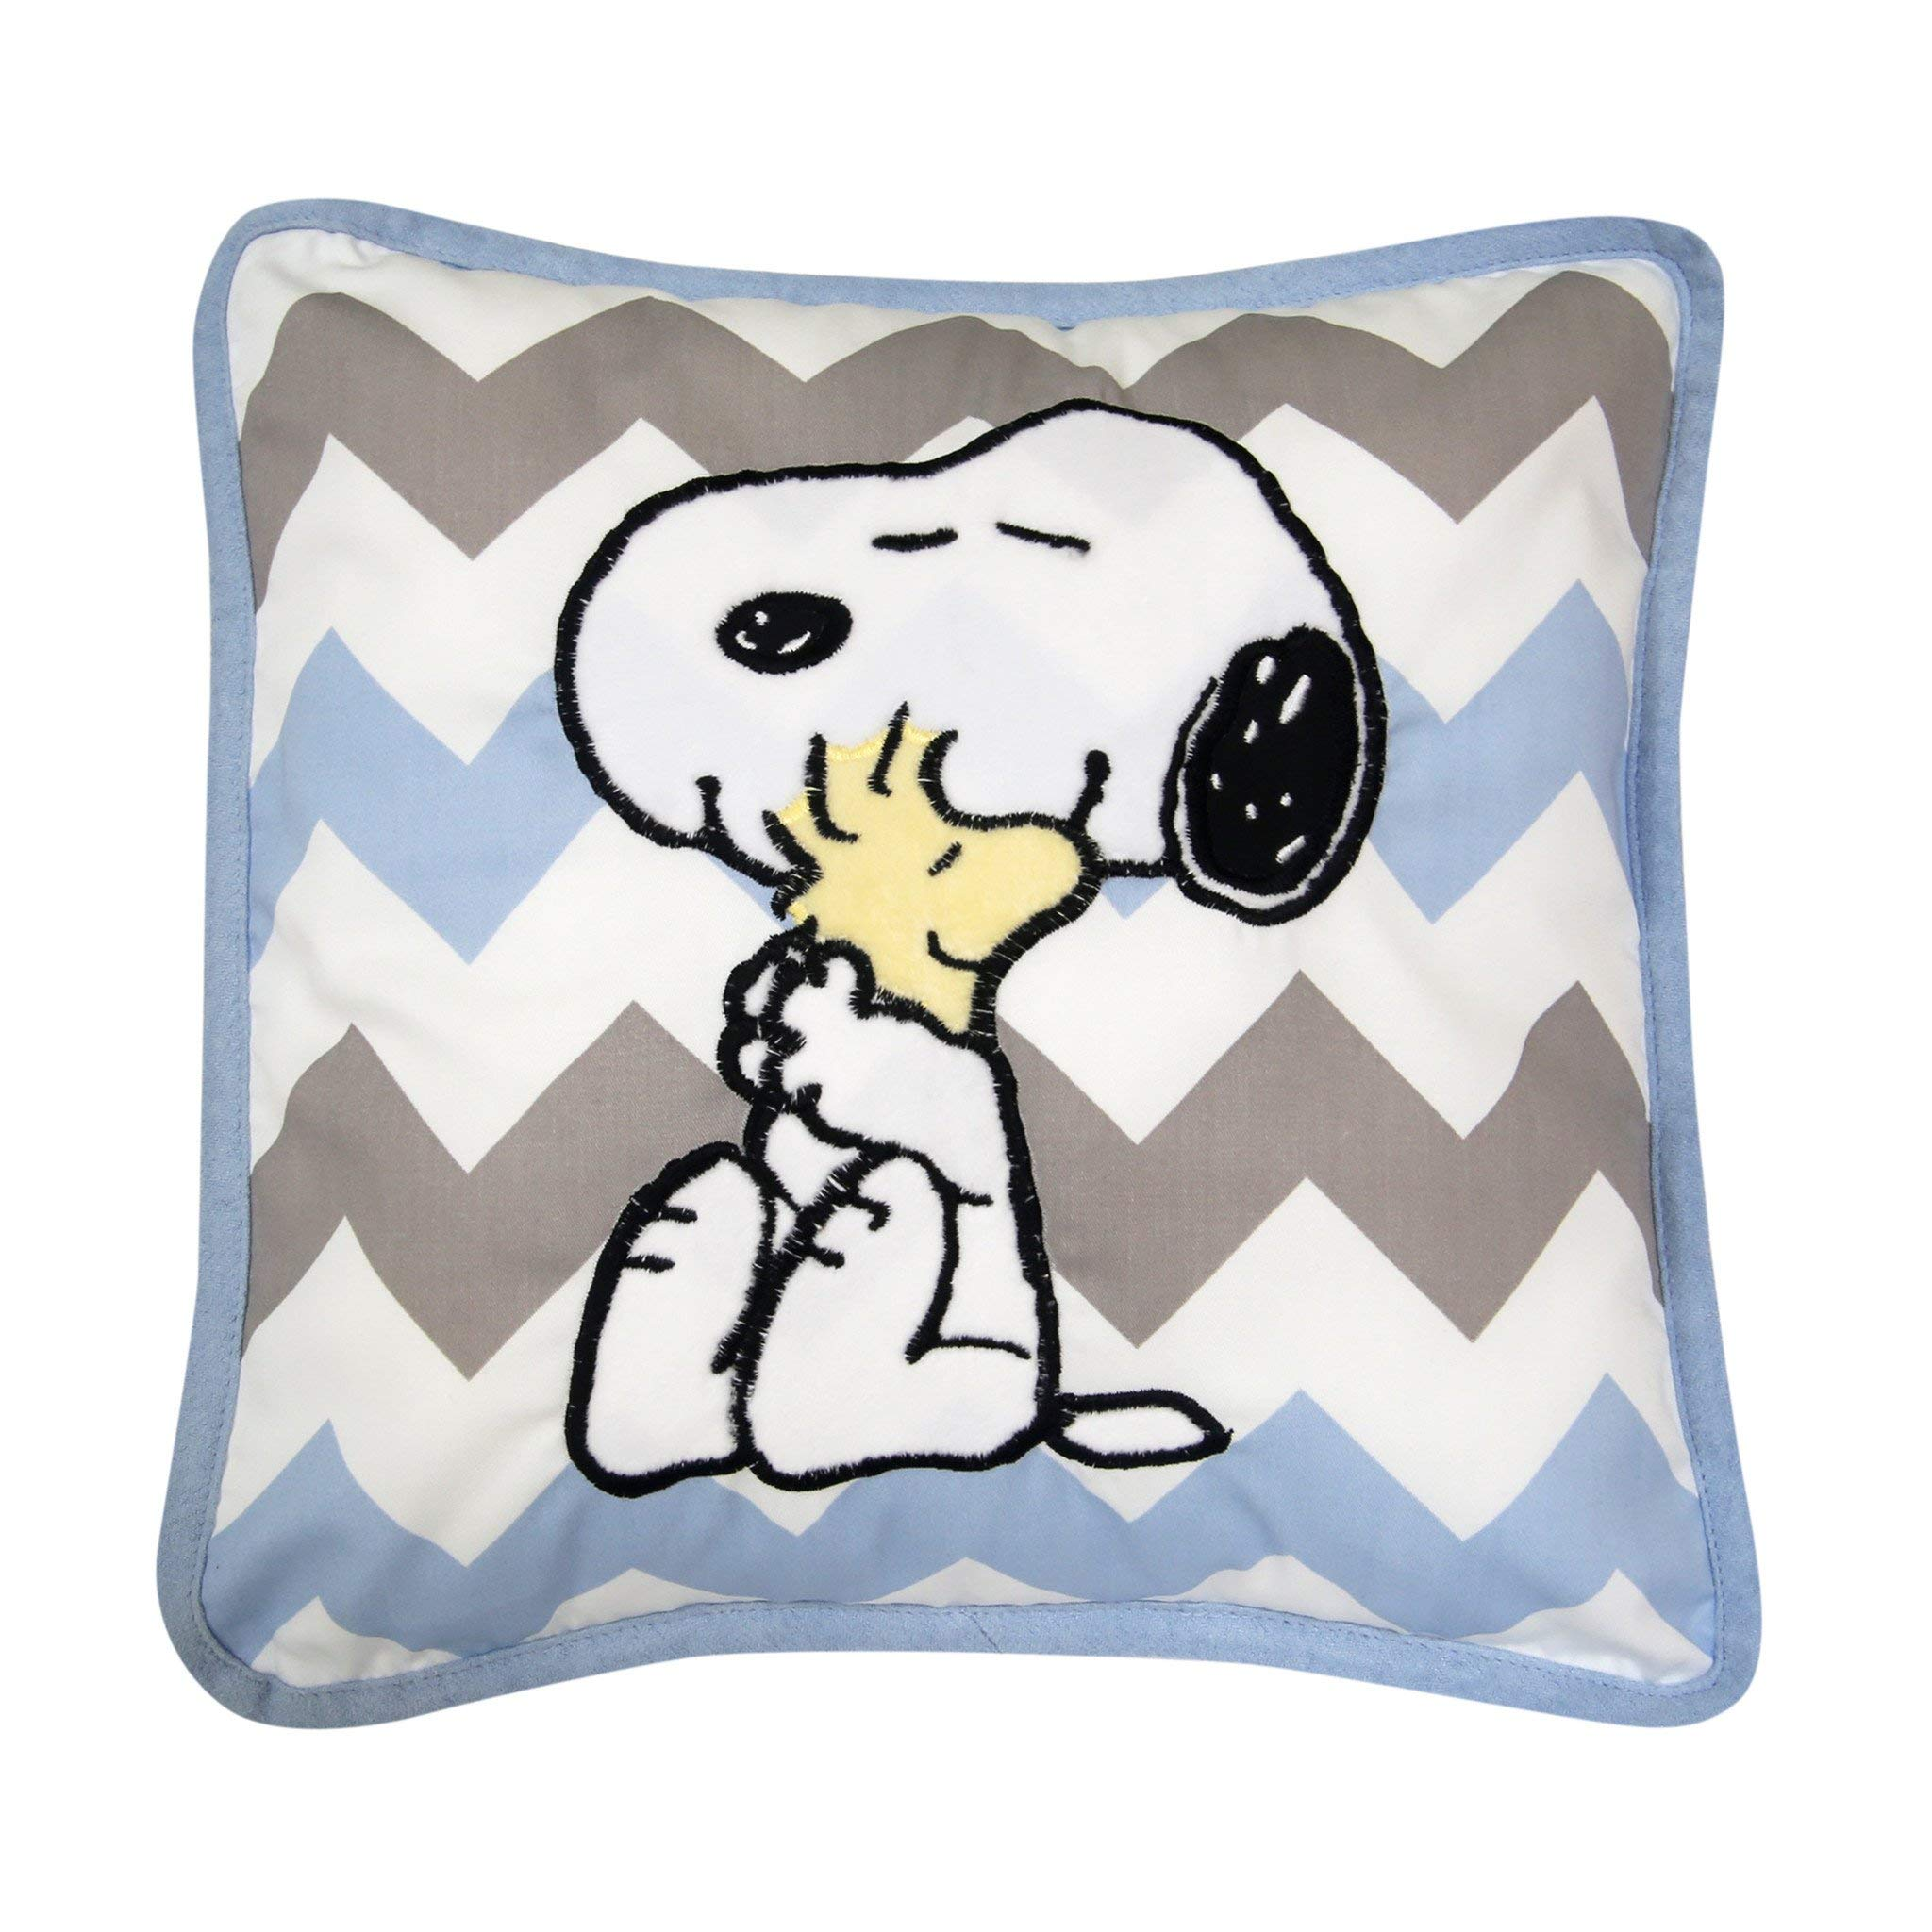 Lambs & Ivy Peanuts My Little Snoopy Decorative Pillow, Blue